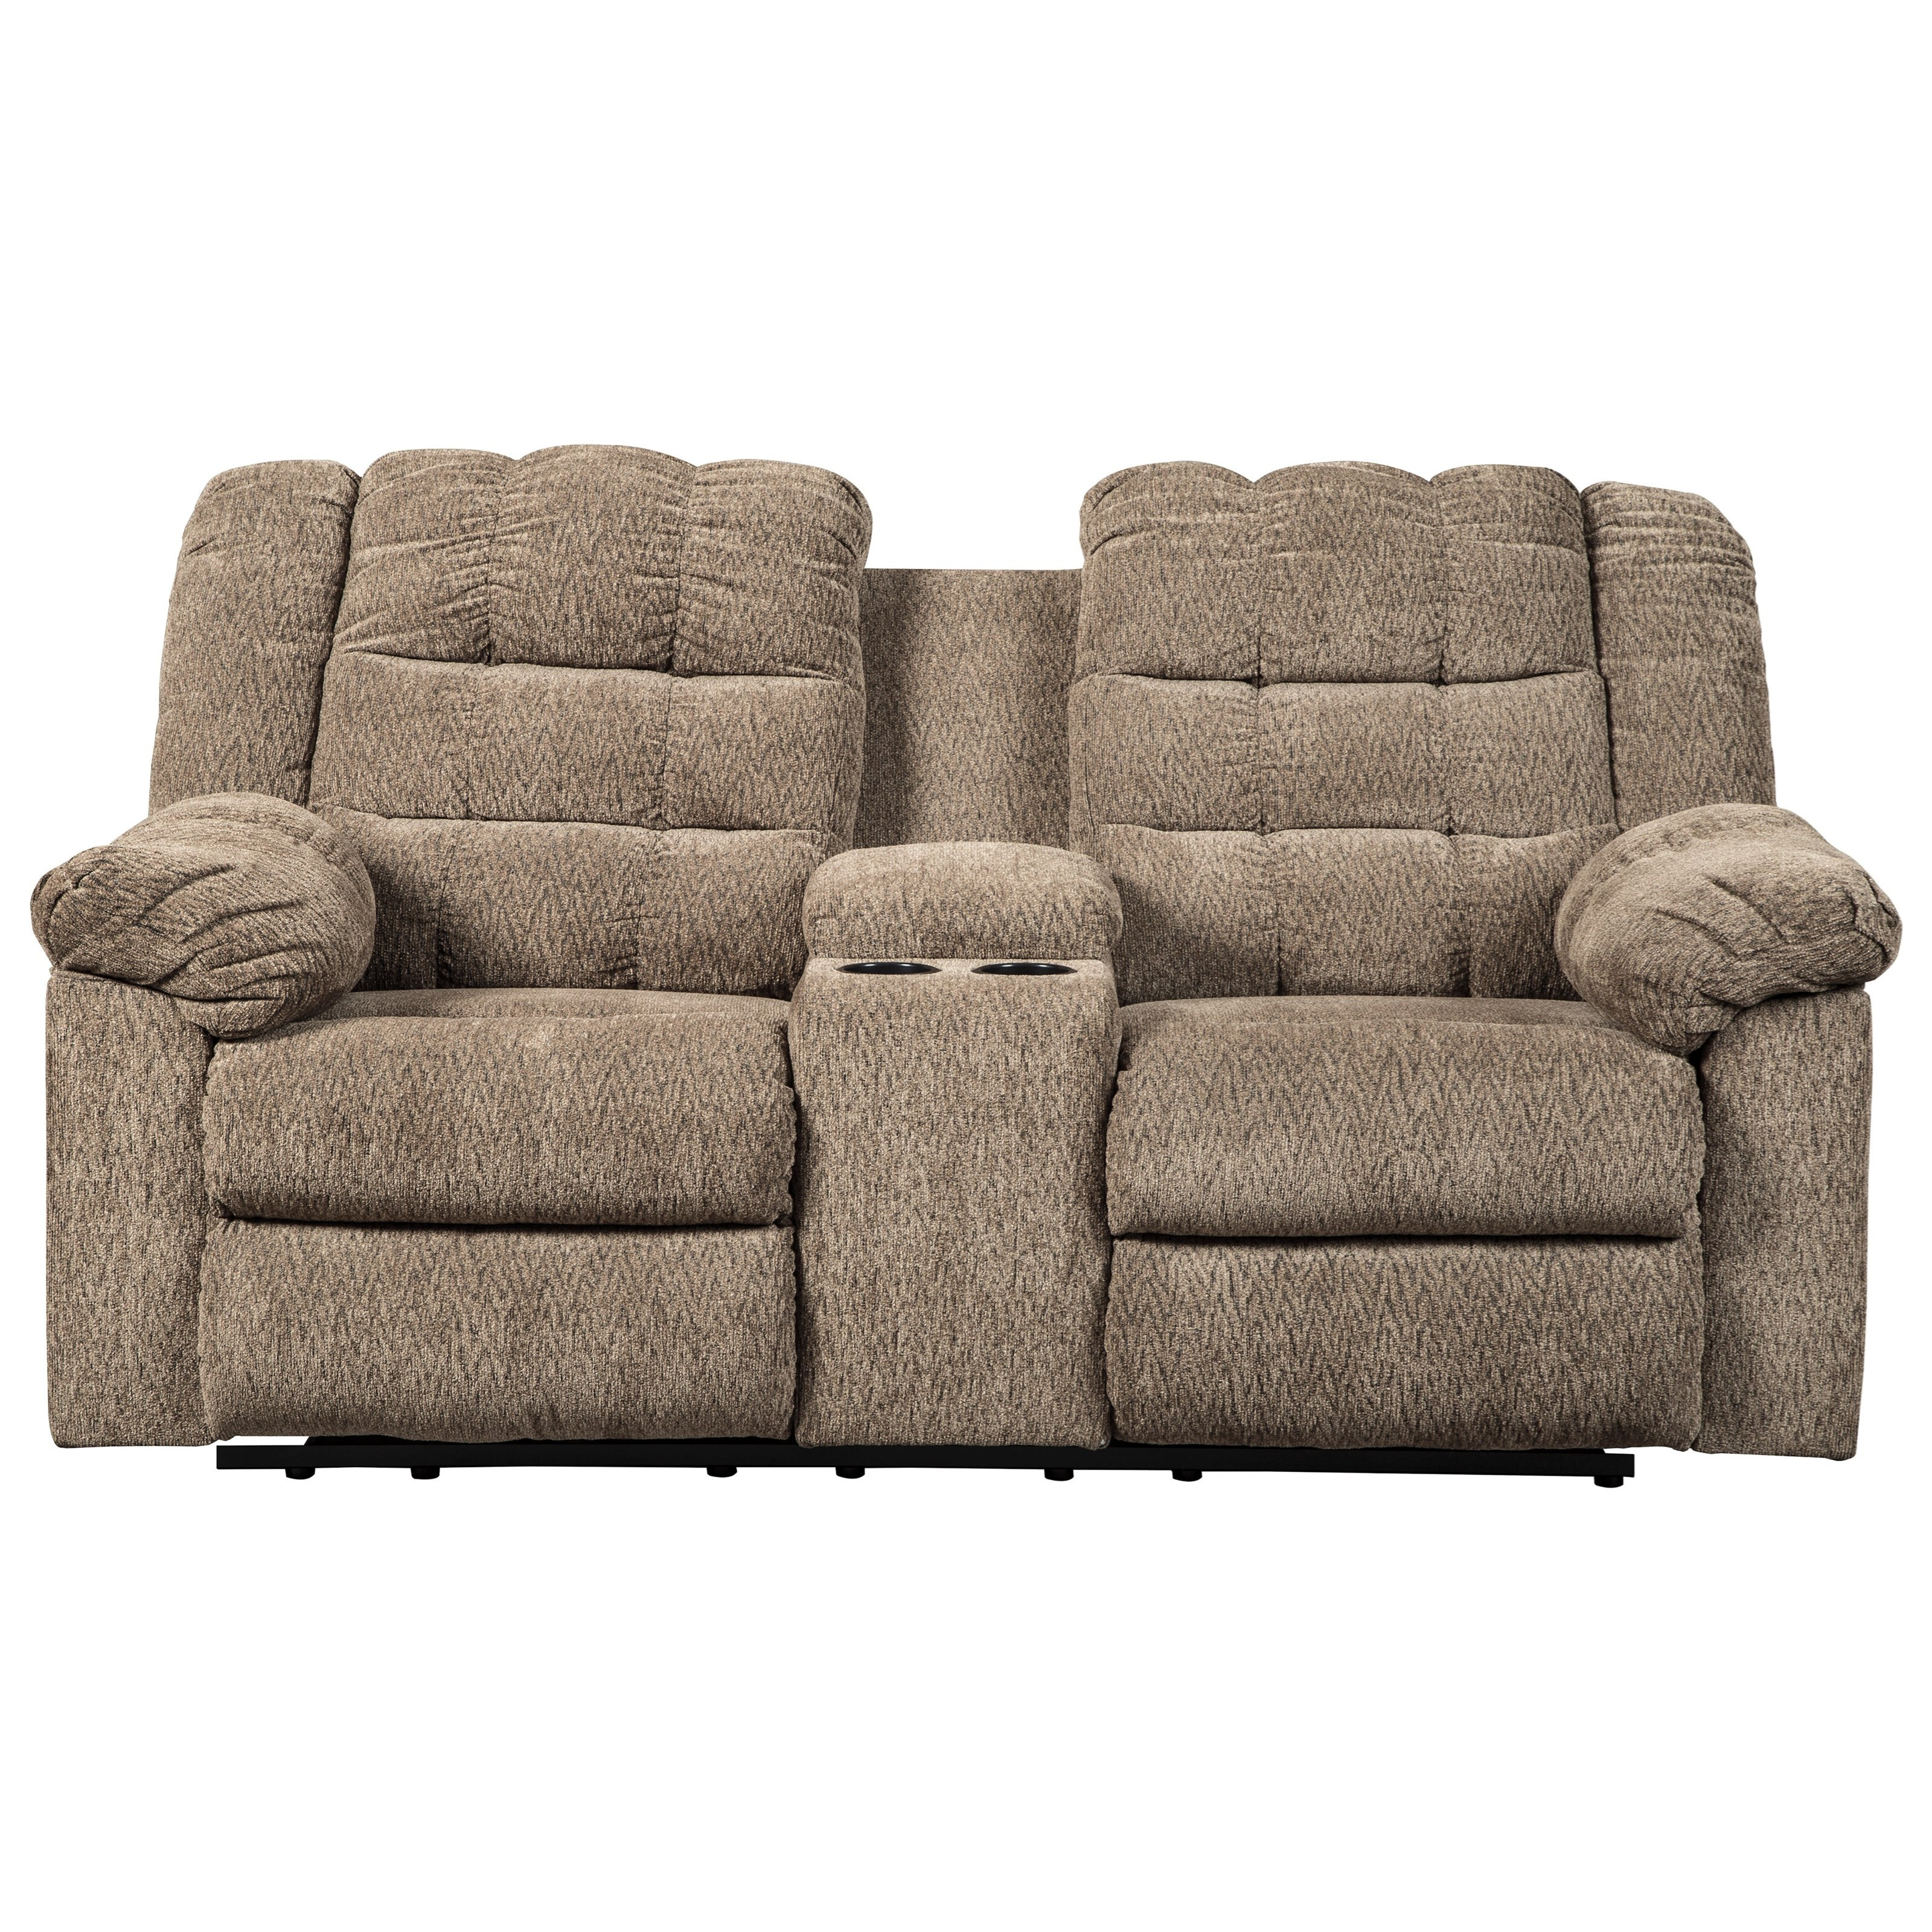 Workhorse Double Reclining Loveseat w/ Console by Signature Design by Ashley at Northeast Factory Direct